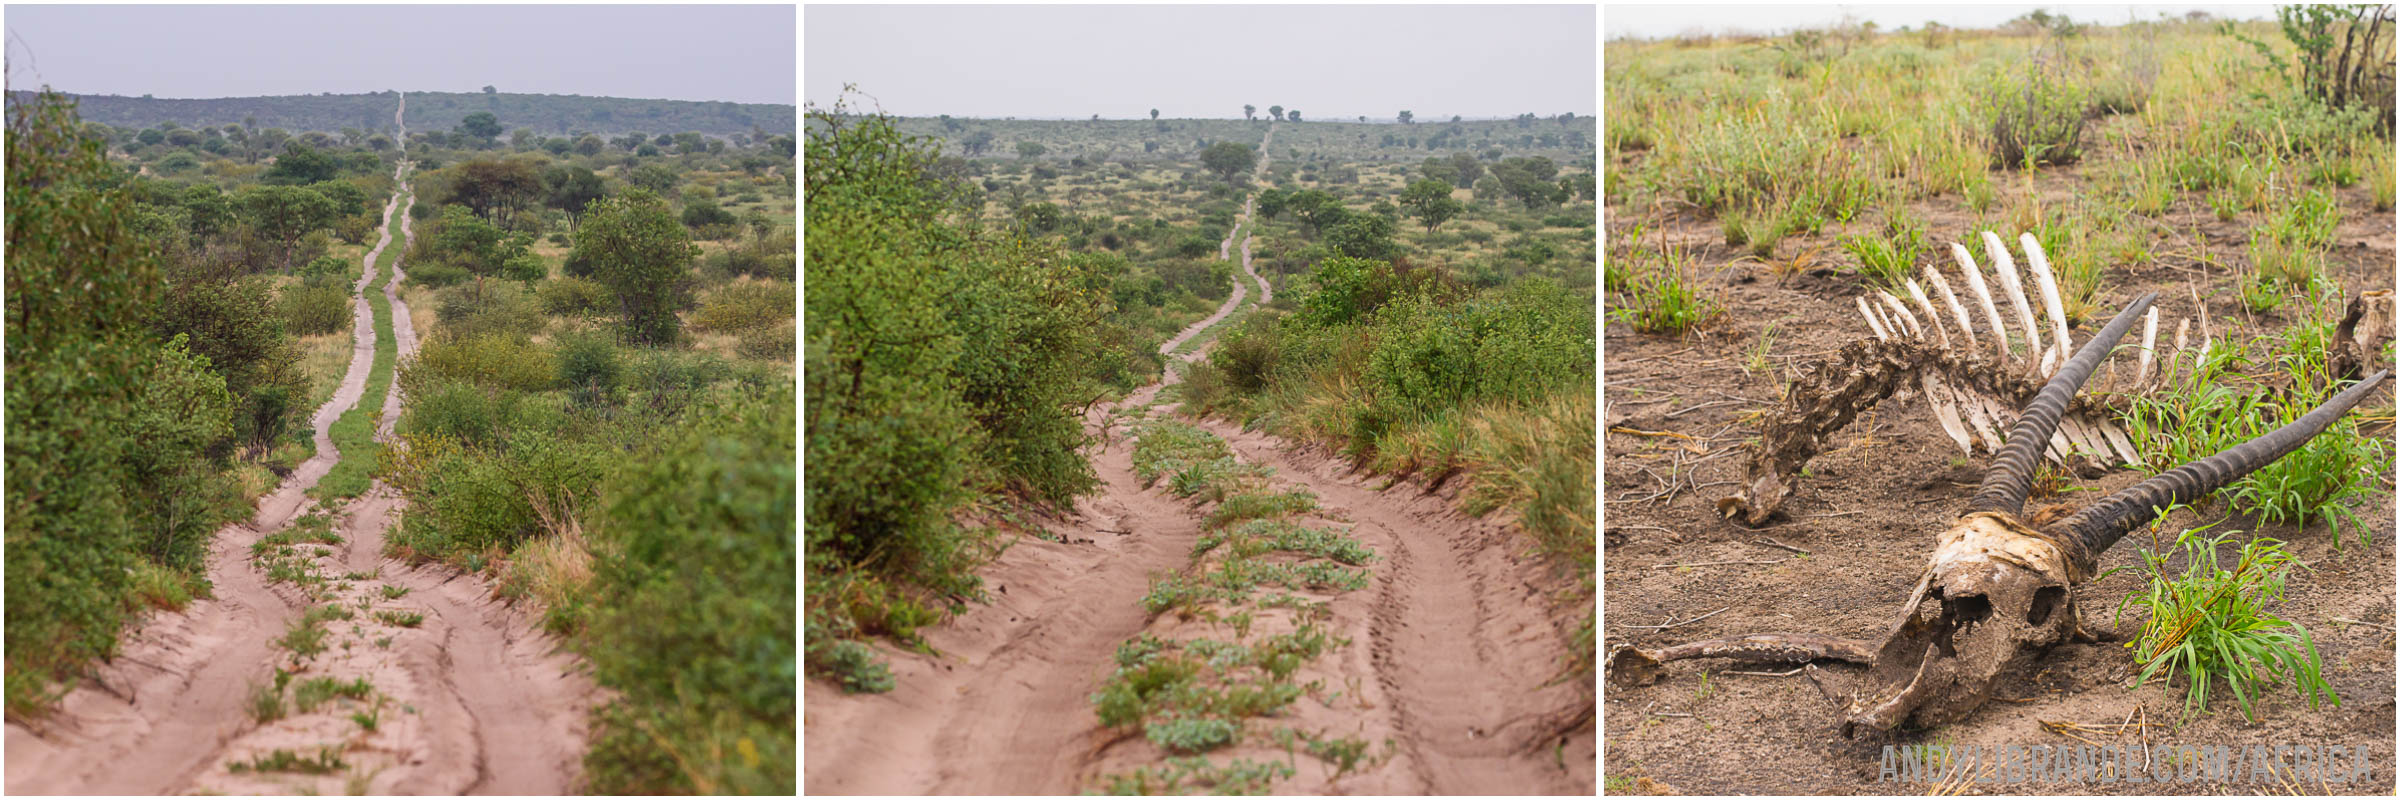 CEntral Kalahari Cutline Road to Tau Pan